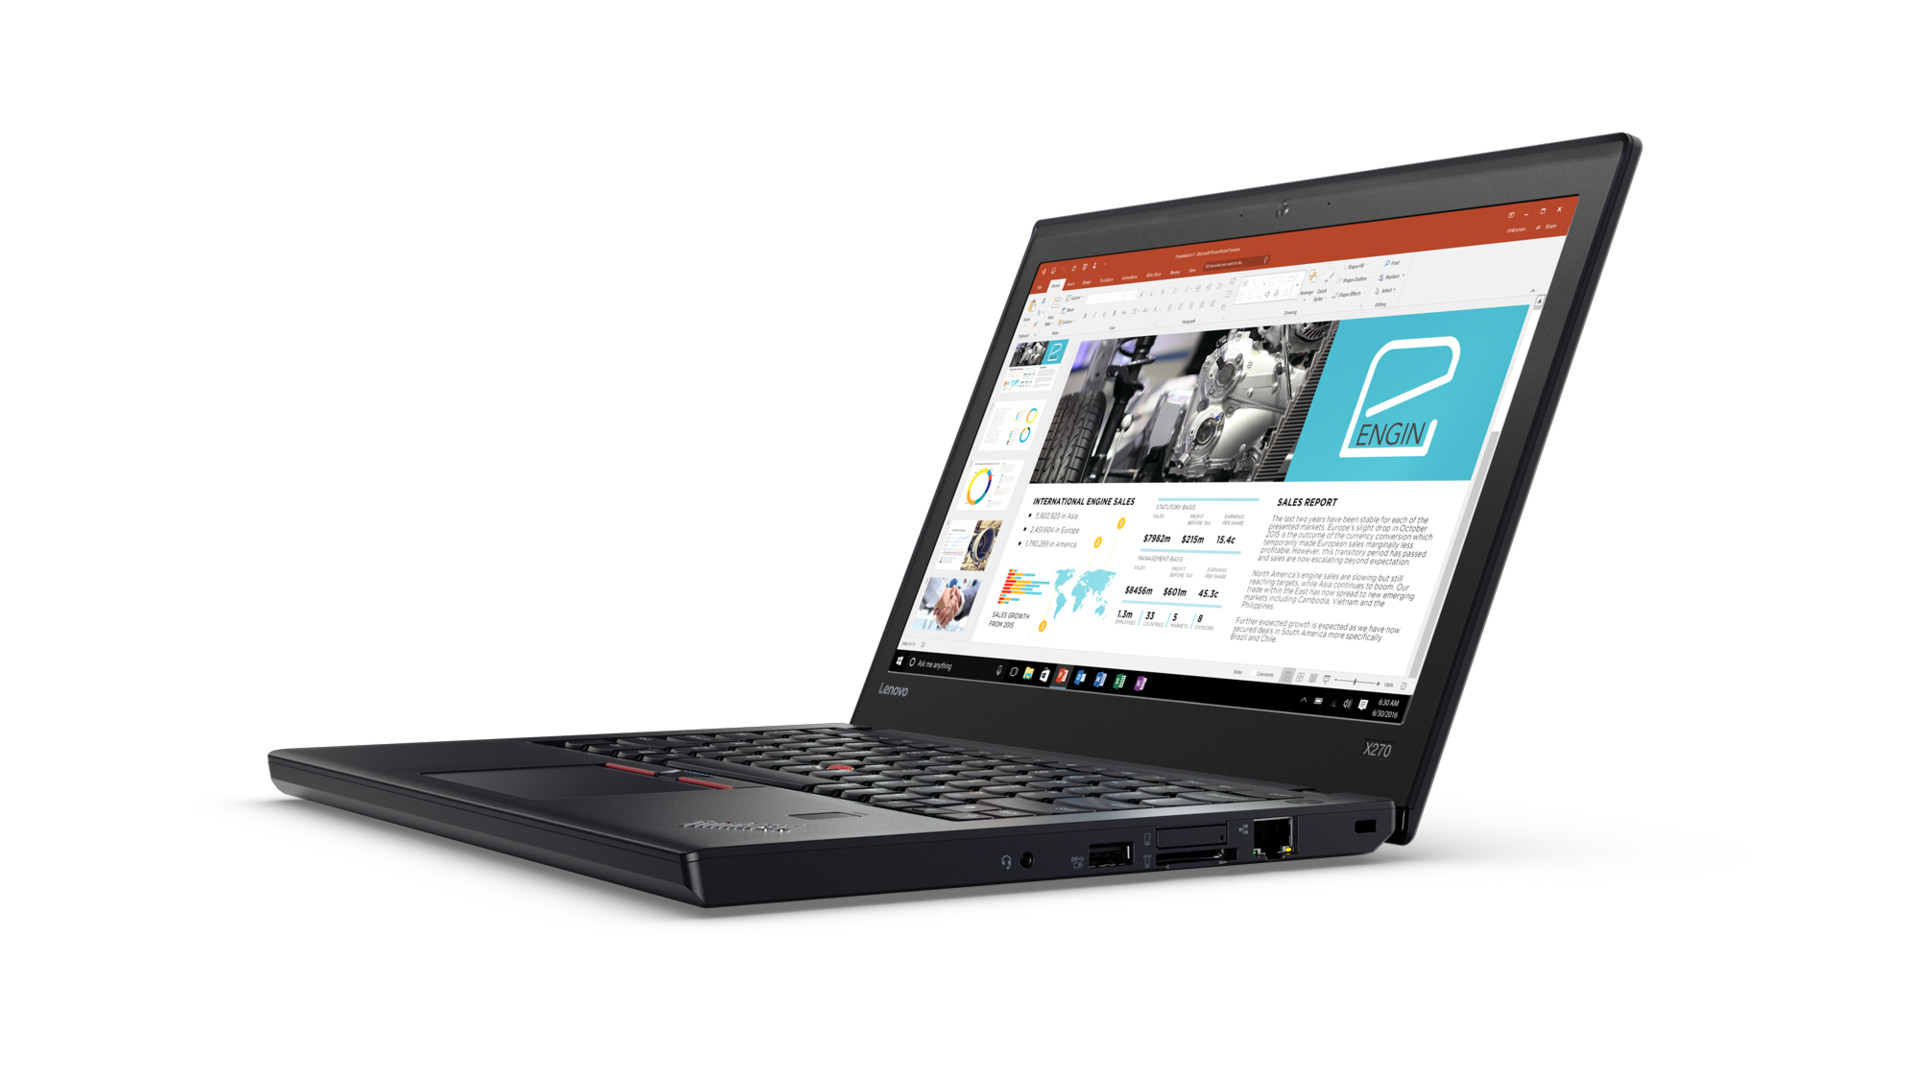 Lenovo ThinkPad X270 12.5' I5-7300U 8GB 128GB Graphics 620 Windows 10 Home 64-bit